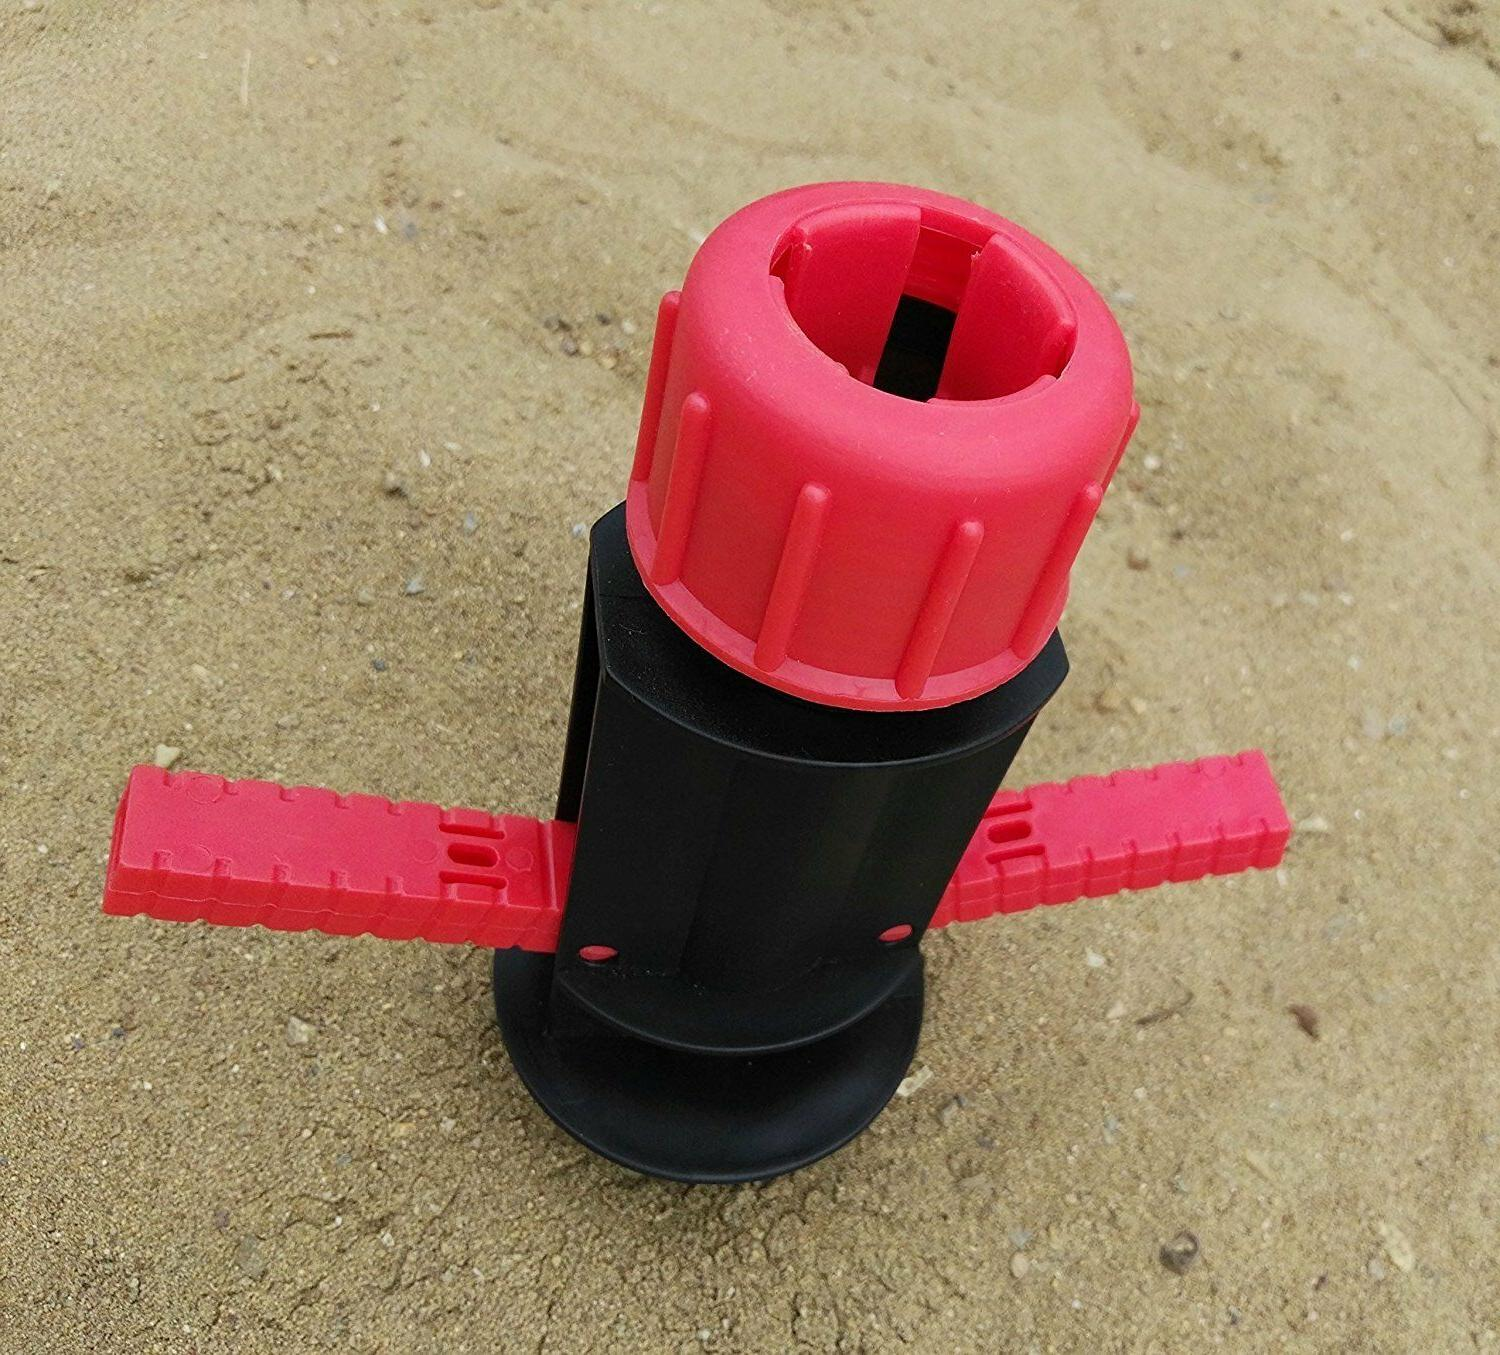 AMMSUN Beach Umbrella sand Anchor, One Fits Stand for